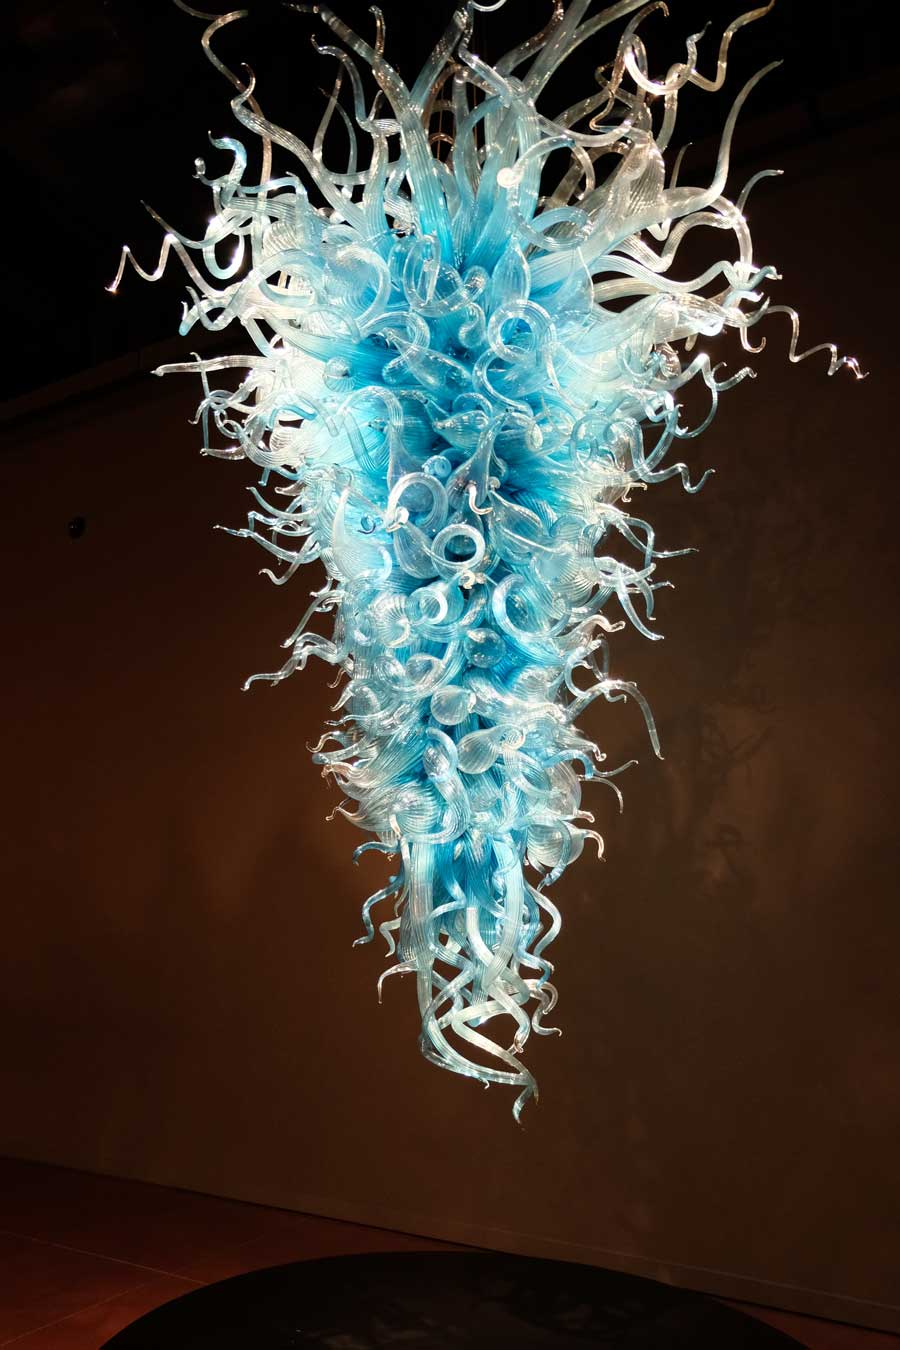 Wundersame Glaswelten, Chihuly Garden and Glass Seattle